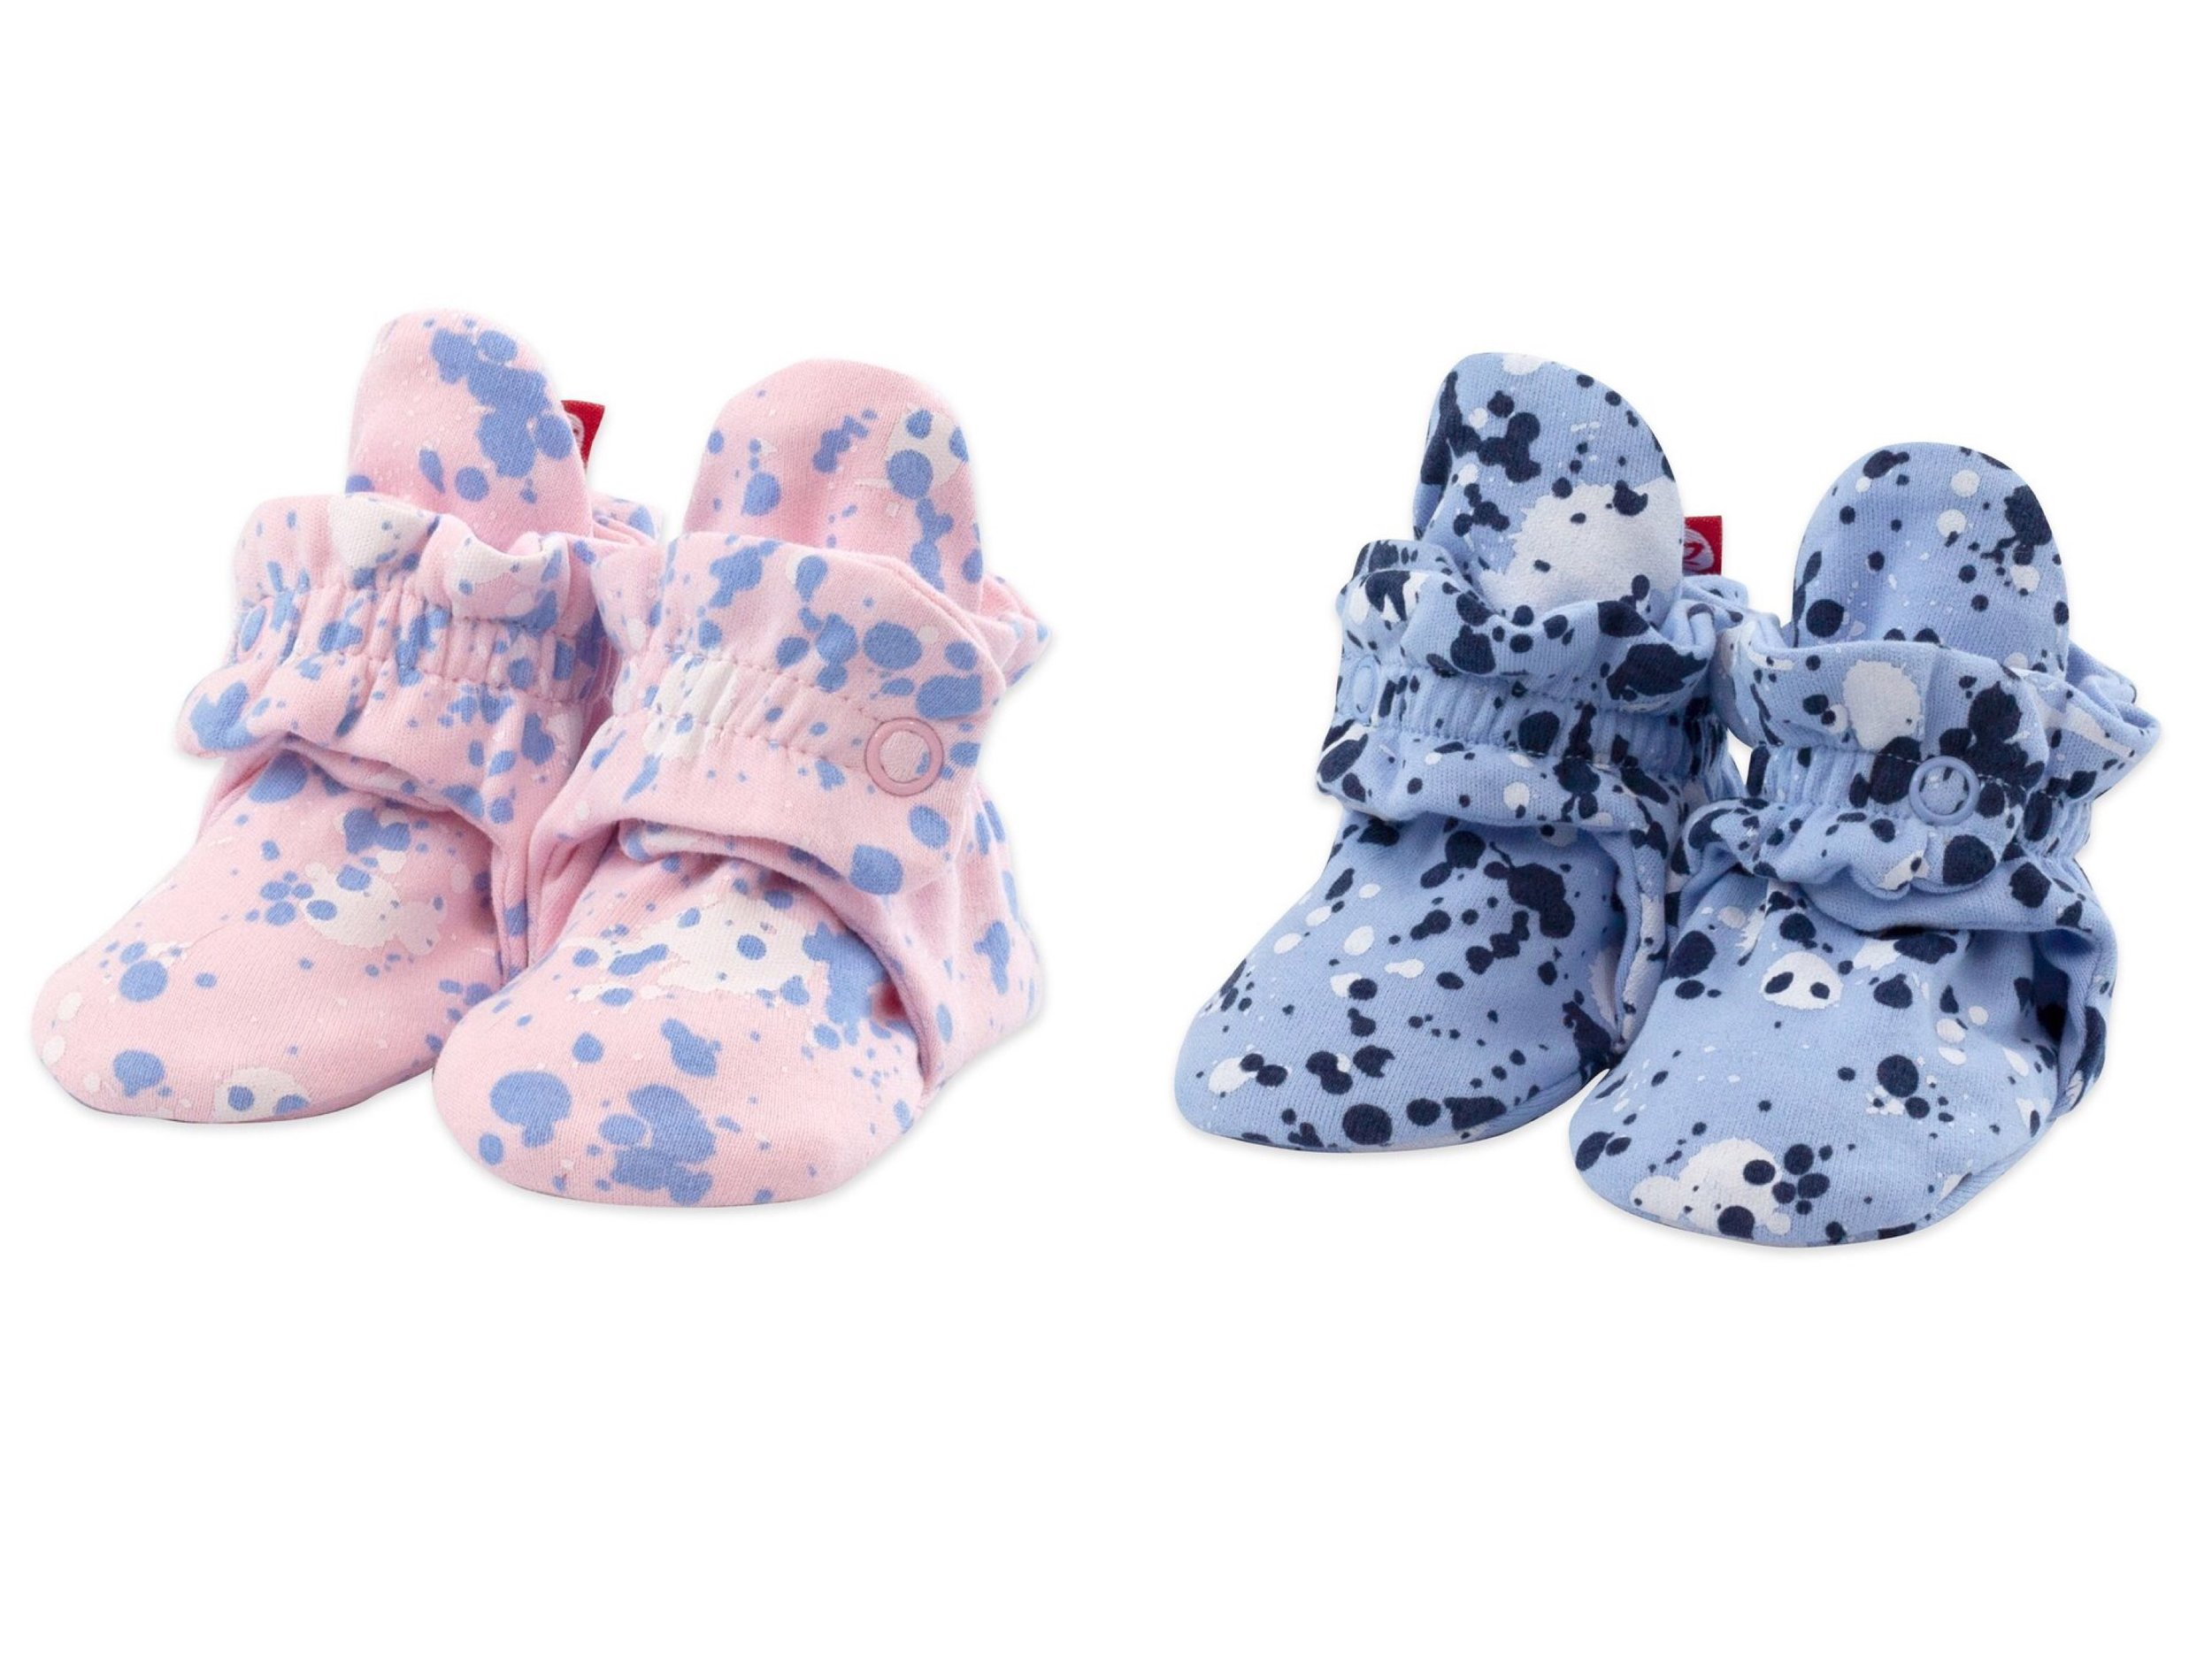 Organic Cotton Baby Booties, $21/one pair